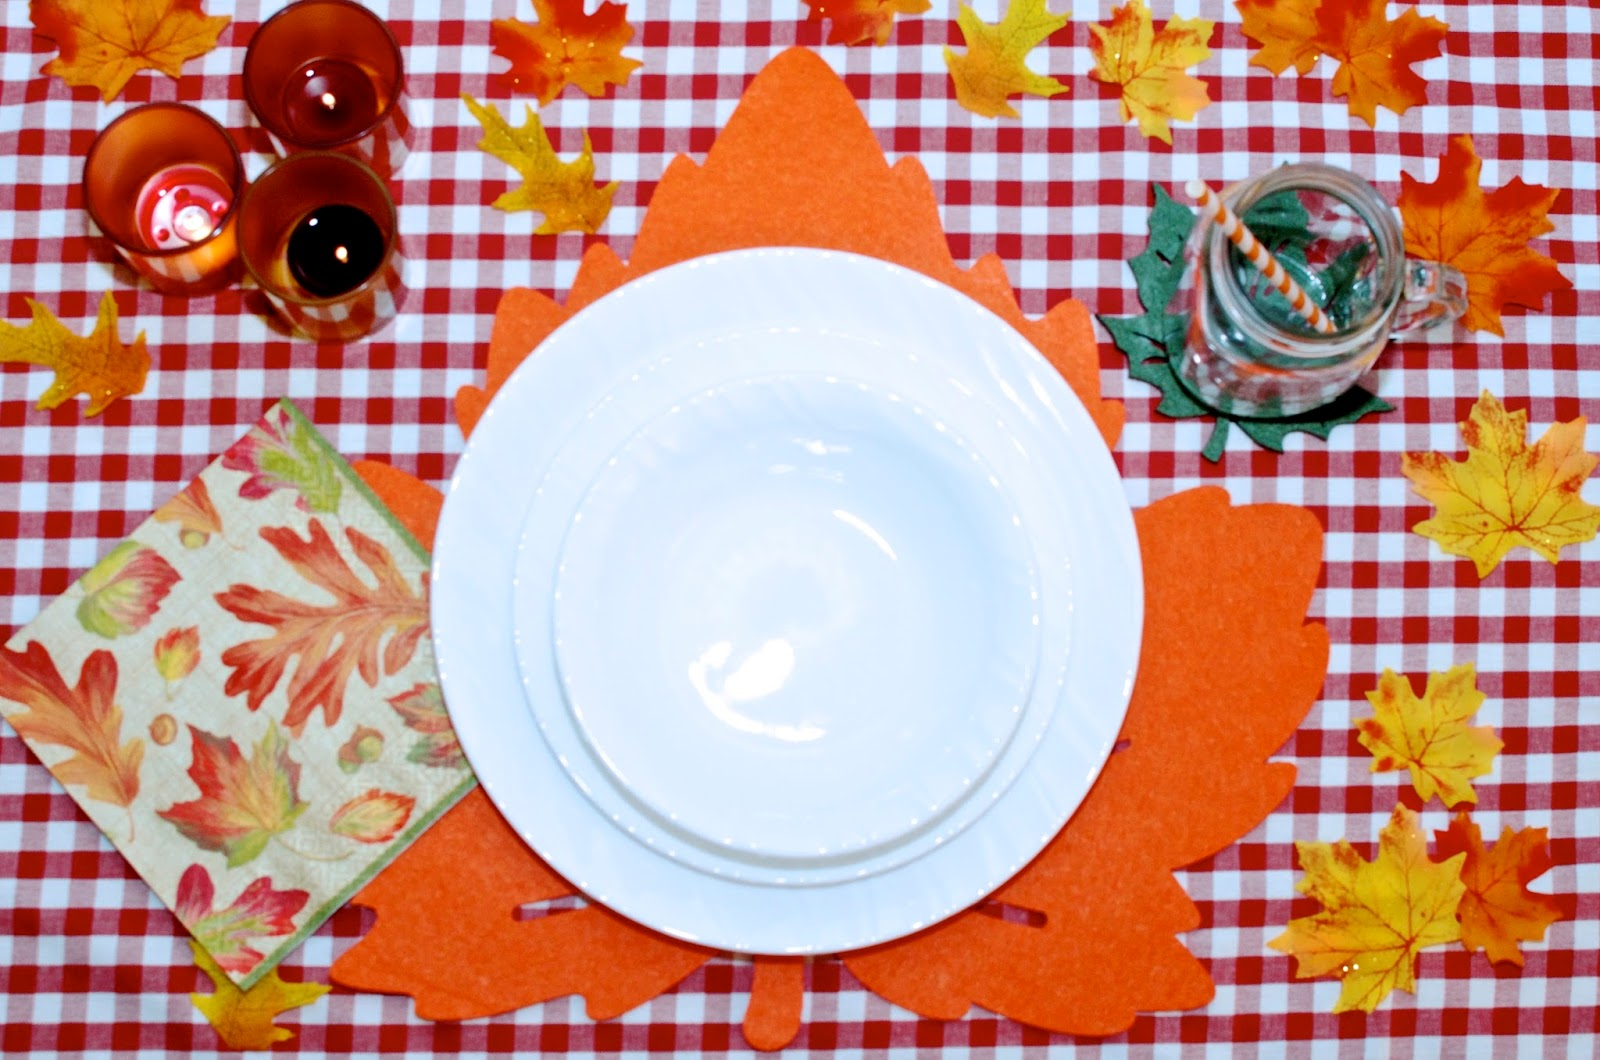 Candles, gingham tablecloth, napkins, leaves, place setting, white dishes and leave placemat